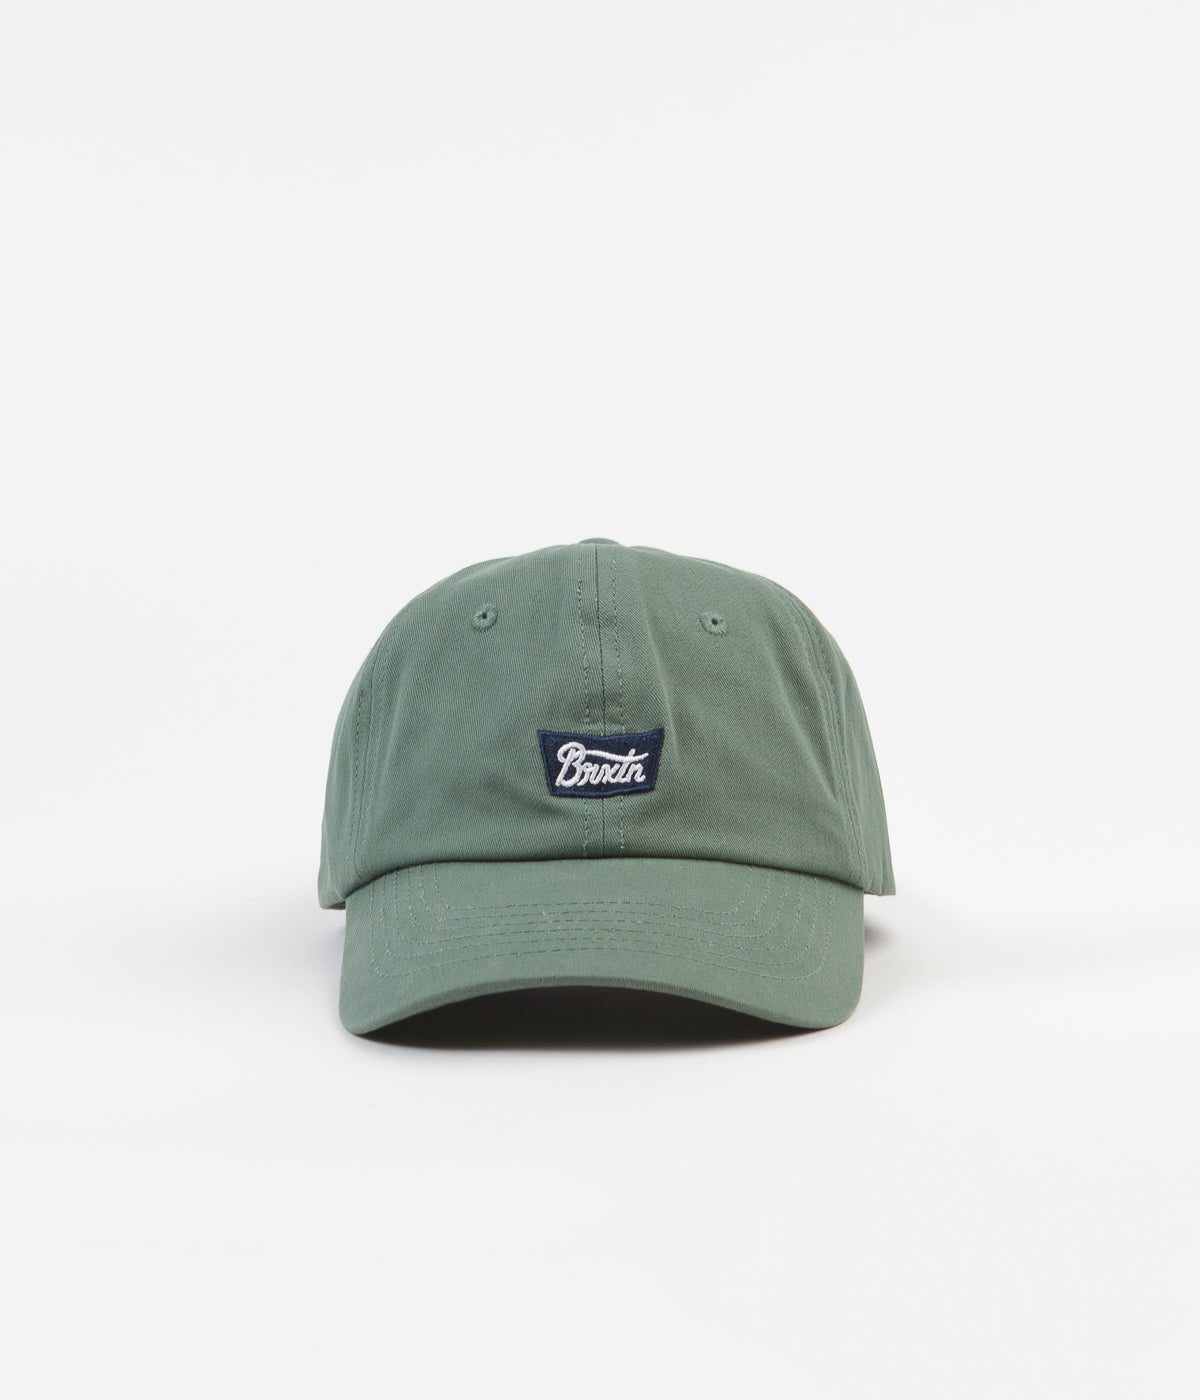 Brixton Stith Cap - Blue Haze